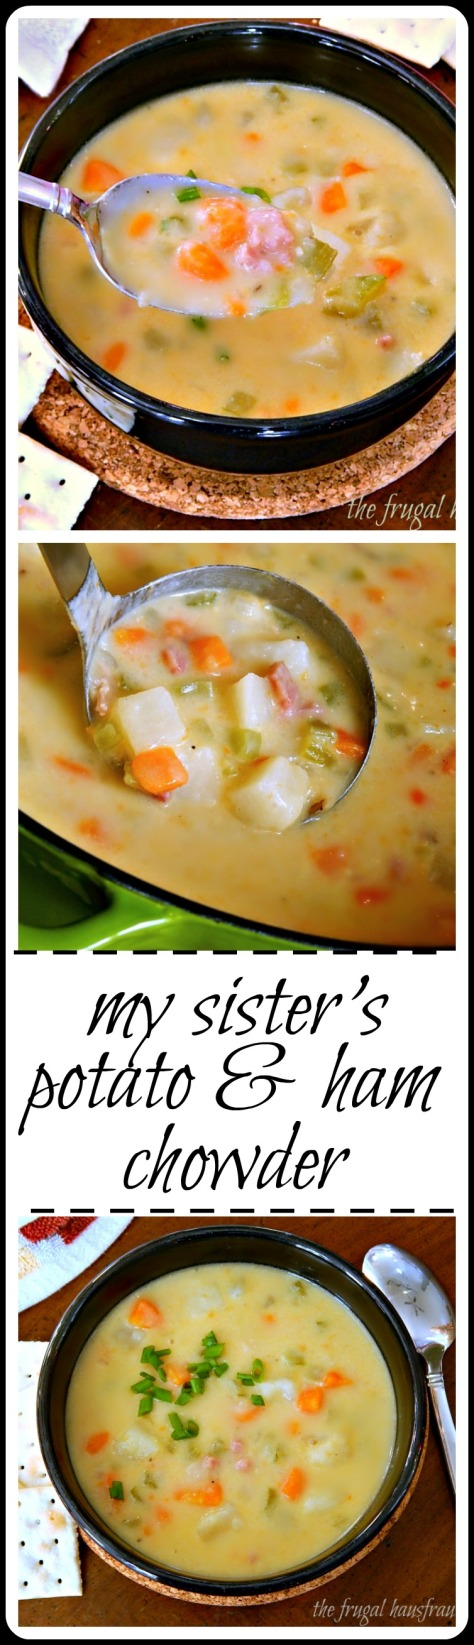 My Sister's Chowder - Seriously good, creamy comfort in a bowl. Fast & easy & you can dress it up how you want. Maybe cheese & bacon?